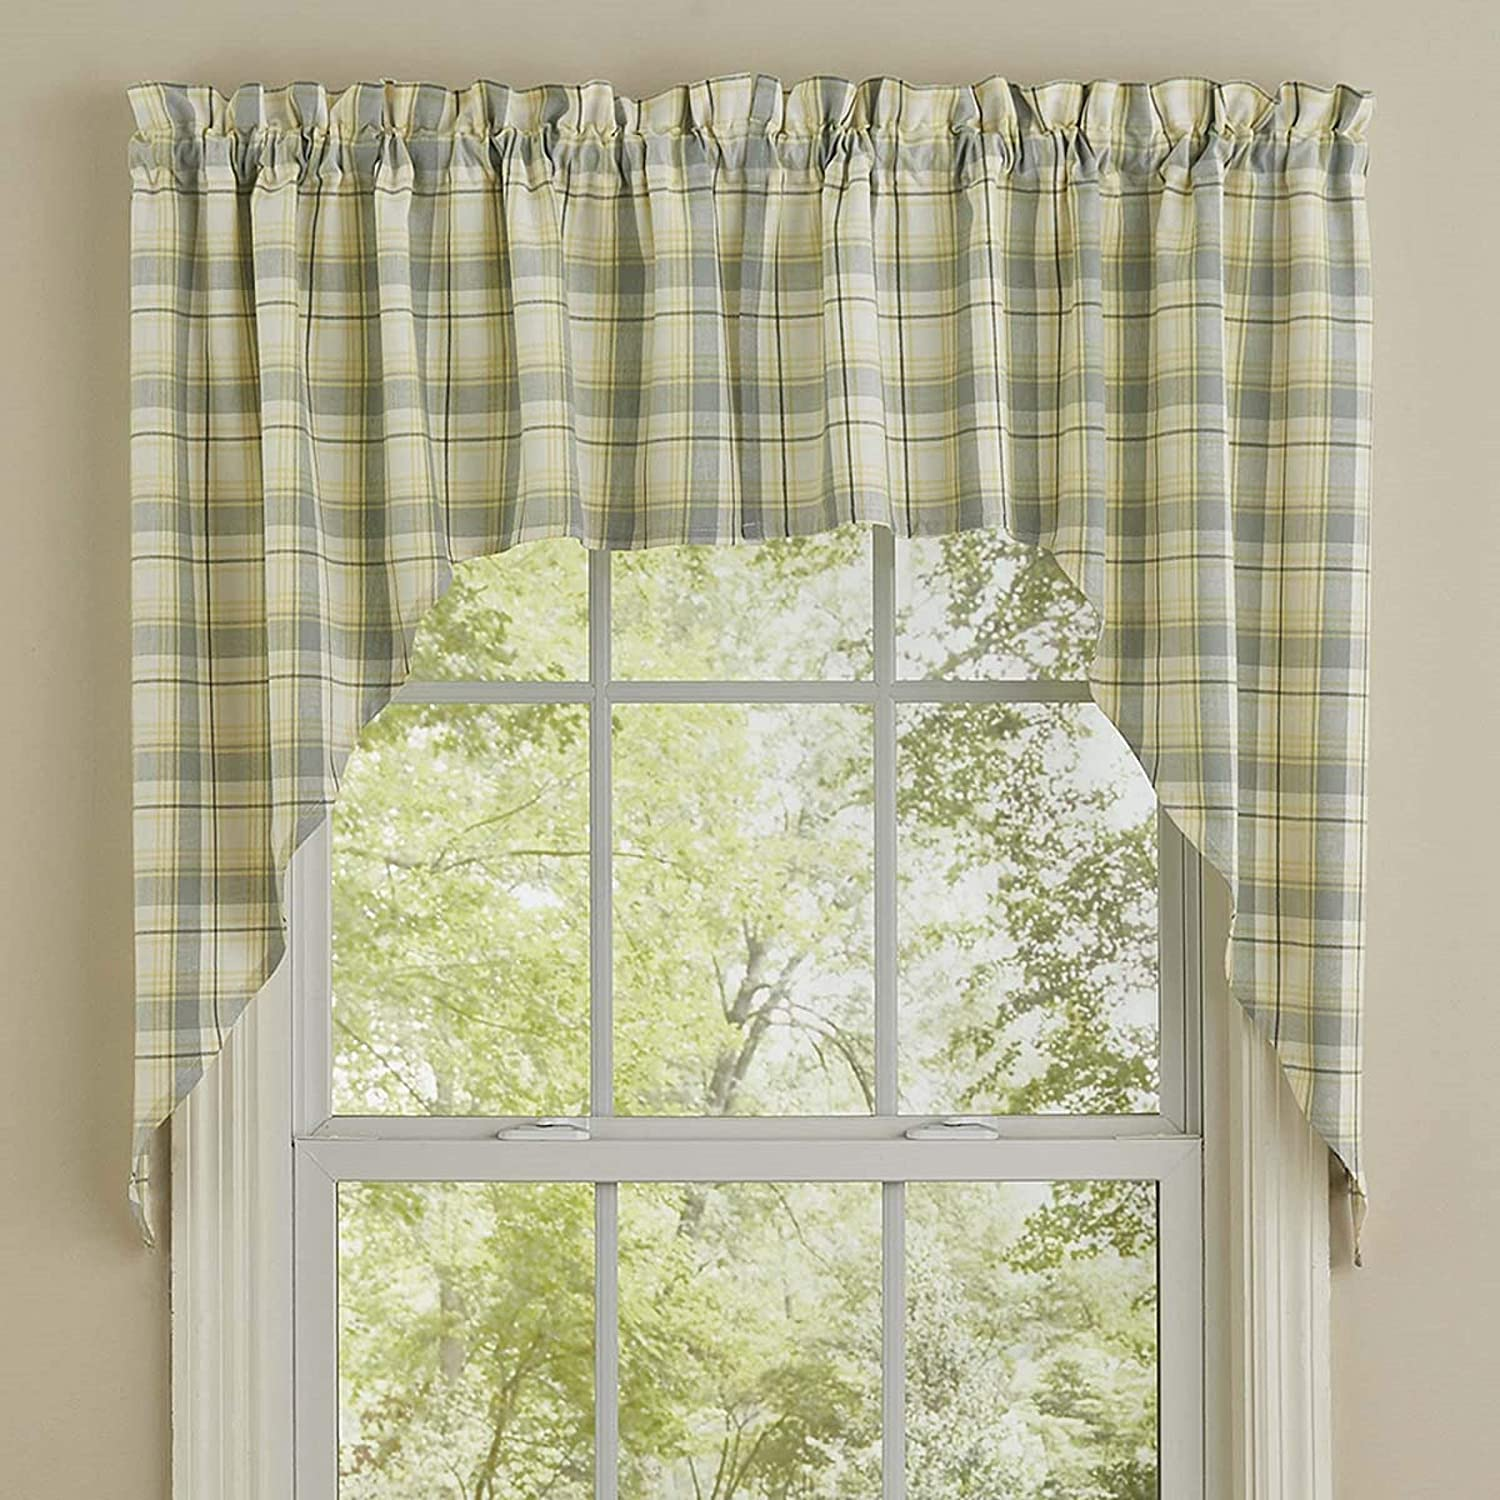 Park Designs Misty Free shipping Swag Plaid Max 65% OFF Morning